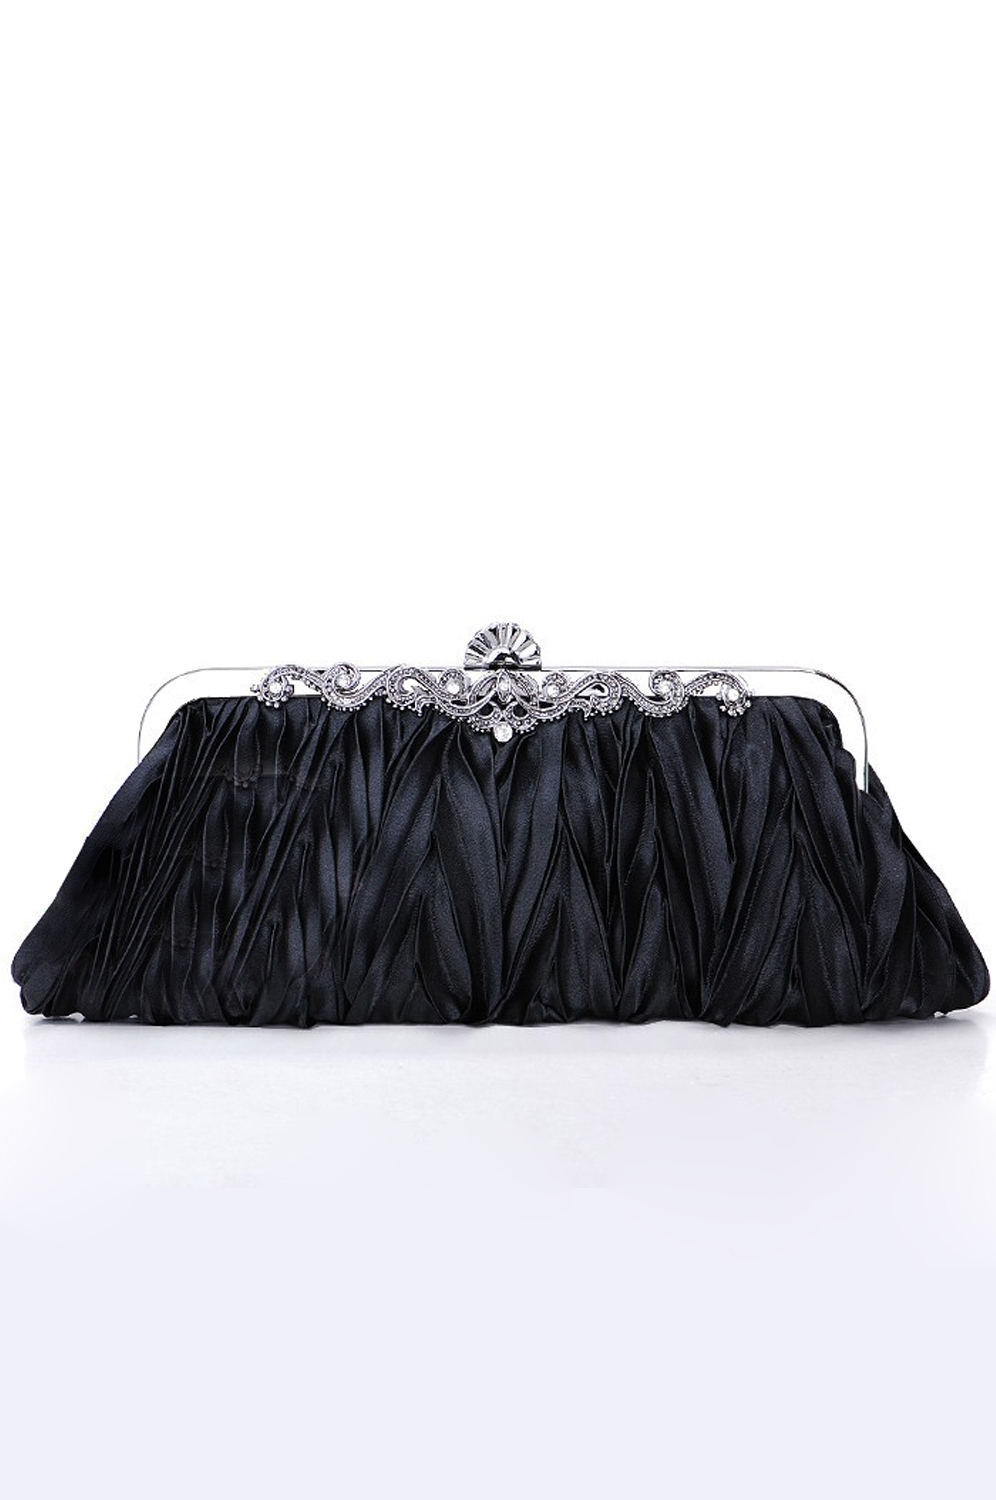 eDressit Black Lady Bag Handbag Shouler/Clutch BAG (08100200)